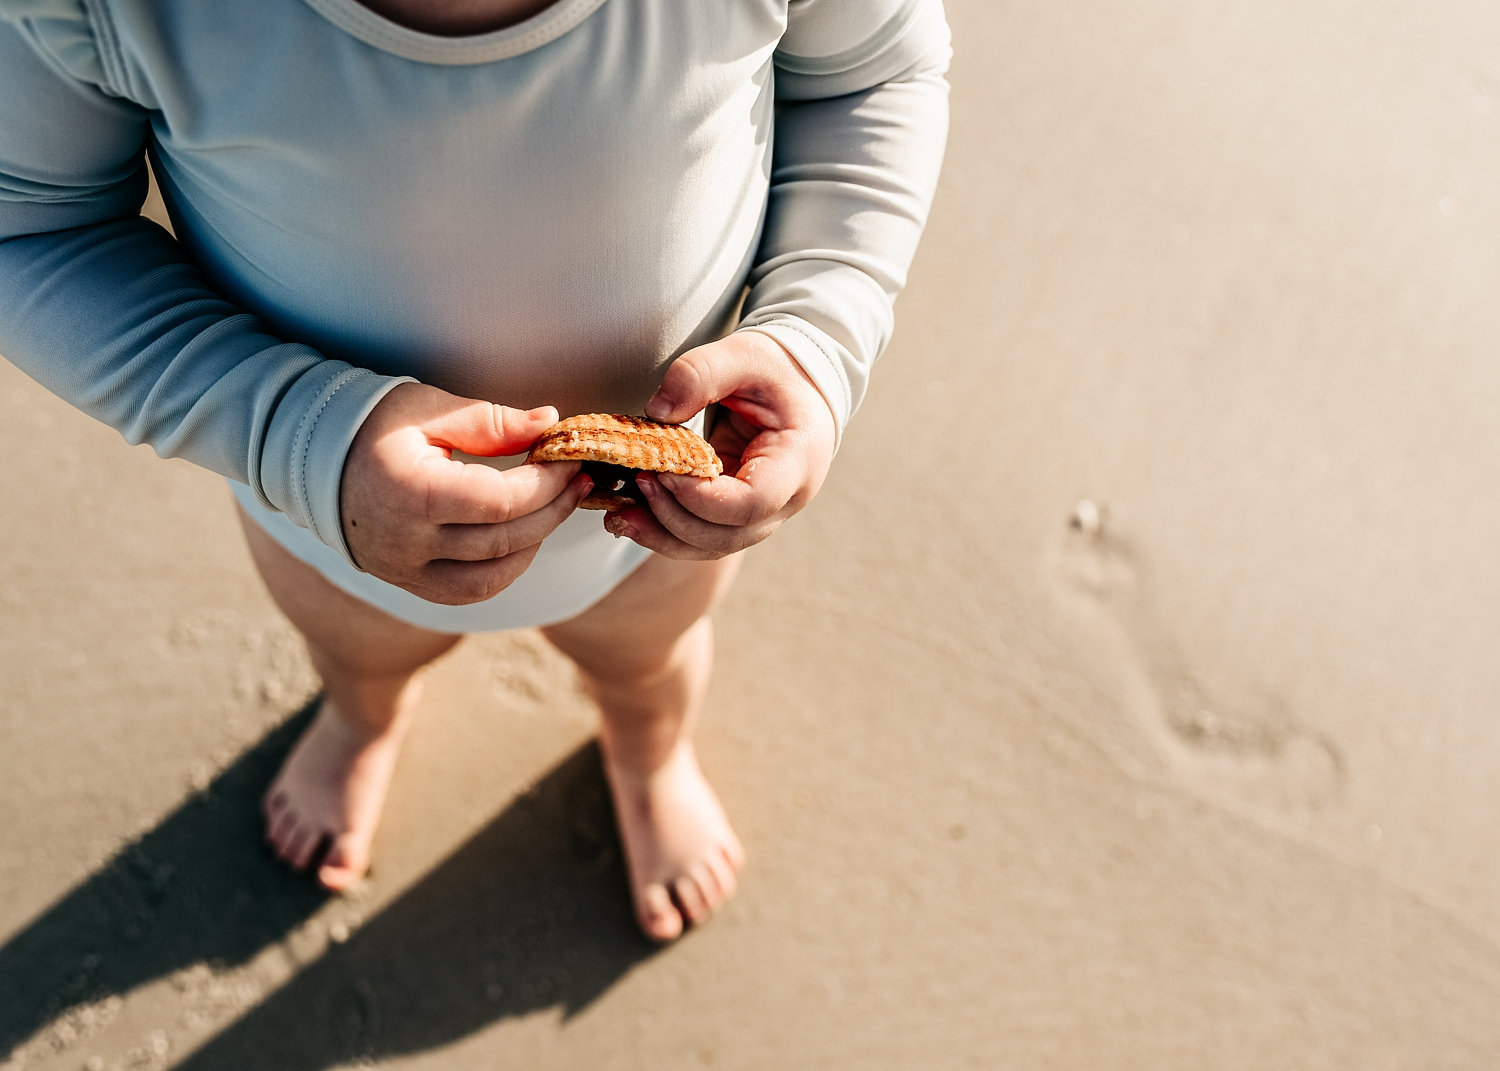 toddler holding a shell, footprint in the sand, Florida beaches, Ryaphotos